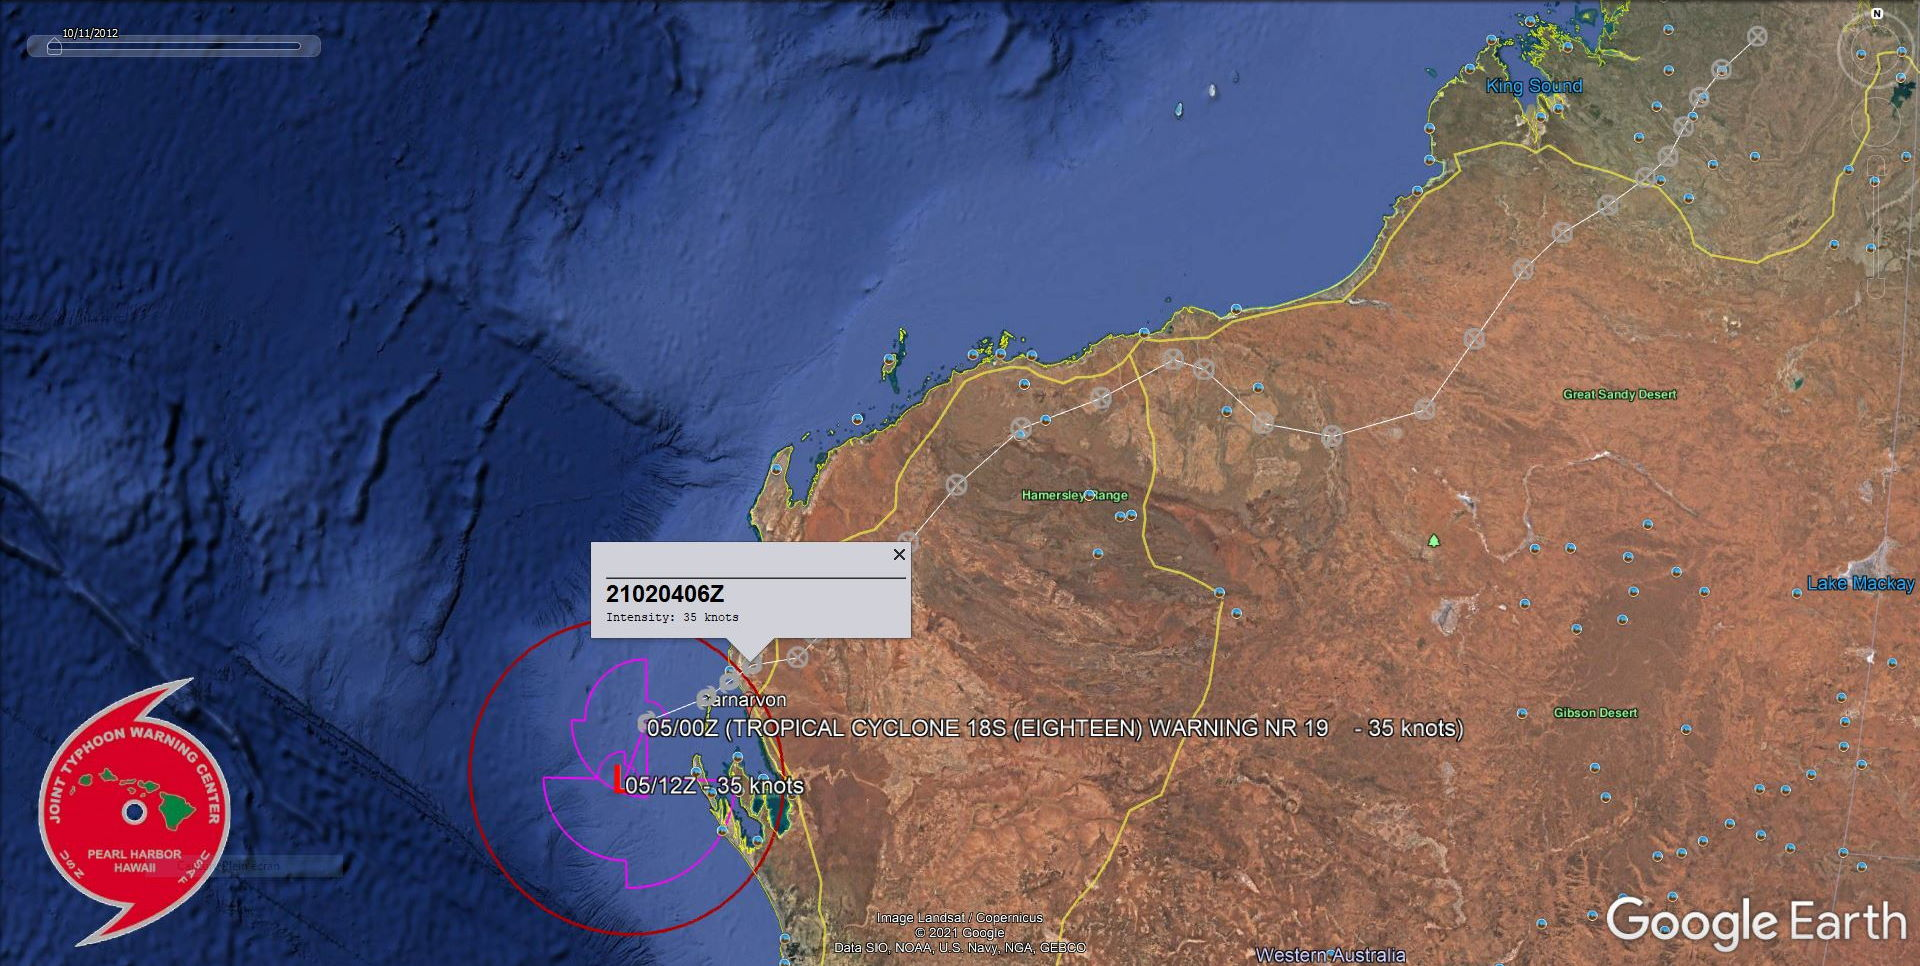 18S((EIGHTEEN). WARNING 19/FINAL. TC 18S WILL CONTINUE SOUTHWARD AS A SUBTROPICAL RIDGE BUILDS EAST OF THE  SYSTEM OVER WESTERN AUSTRALIA. DUE TO THE SOUTHWARD TRACK, THE SYSTEM  WILL MOVE UNDER THE SUBTROPICAL WESTERLIES WITH INCREASING VWS (30-45  KNOTS). TC 18S IS EXPECTED TO FULL TRANSITION INTO A SUBTROPICAL  CYCLONE AS IT TRACKS POLEWARD UNDER OVER COOLING SEAS.THE SYSTEM SPENT THE LARGE MAJORITY OF ITS LIFETIME OVER-LAND. PEAK INTENSITY WAS 35KNOTS.